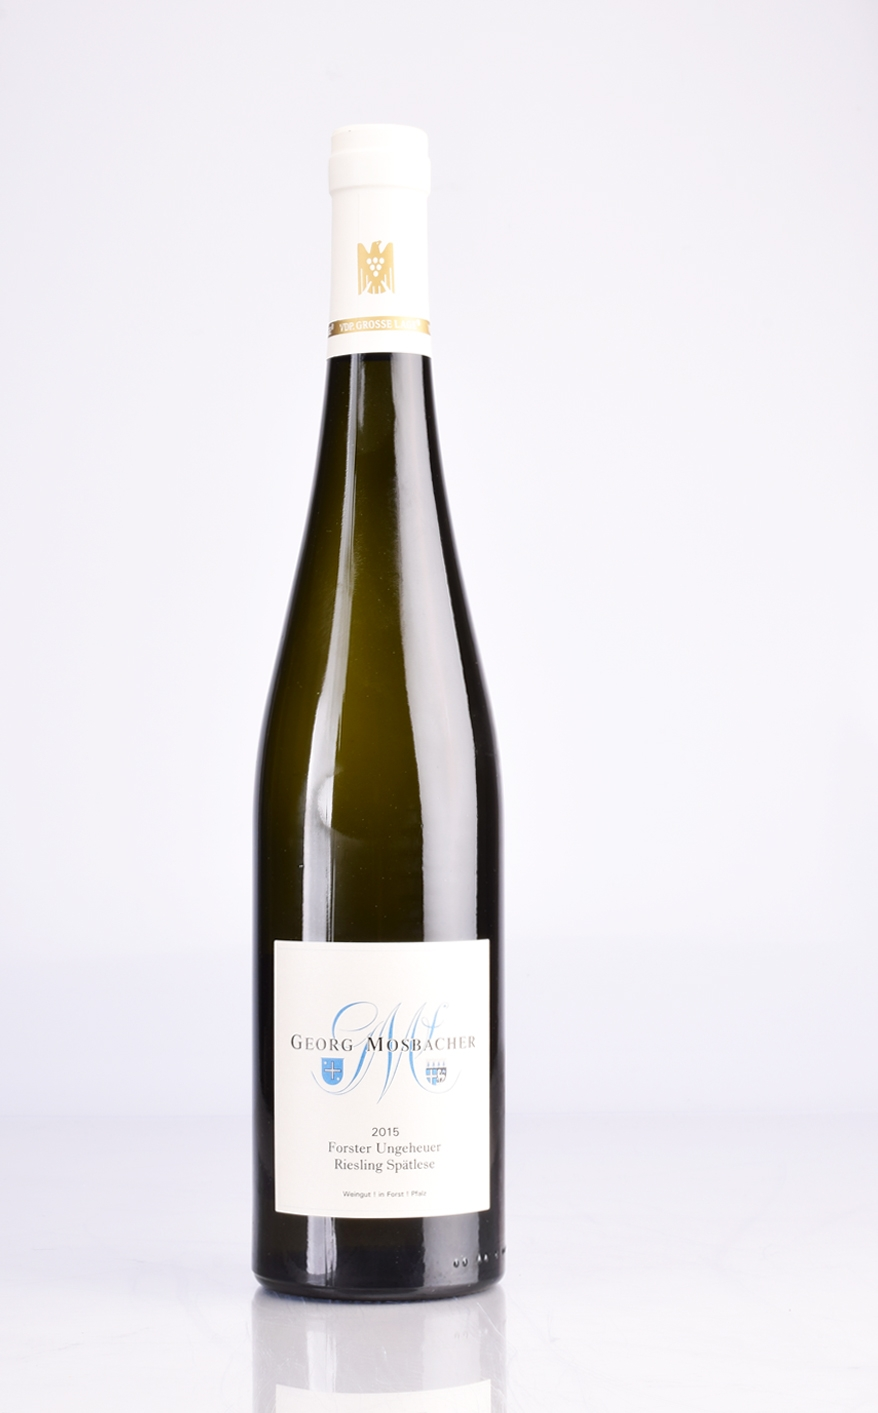 FORSTER UNGEHEUER RIESLING SPATLESE 2015 GEORG MOSBACHER